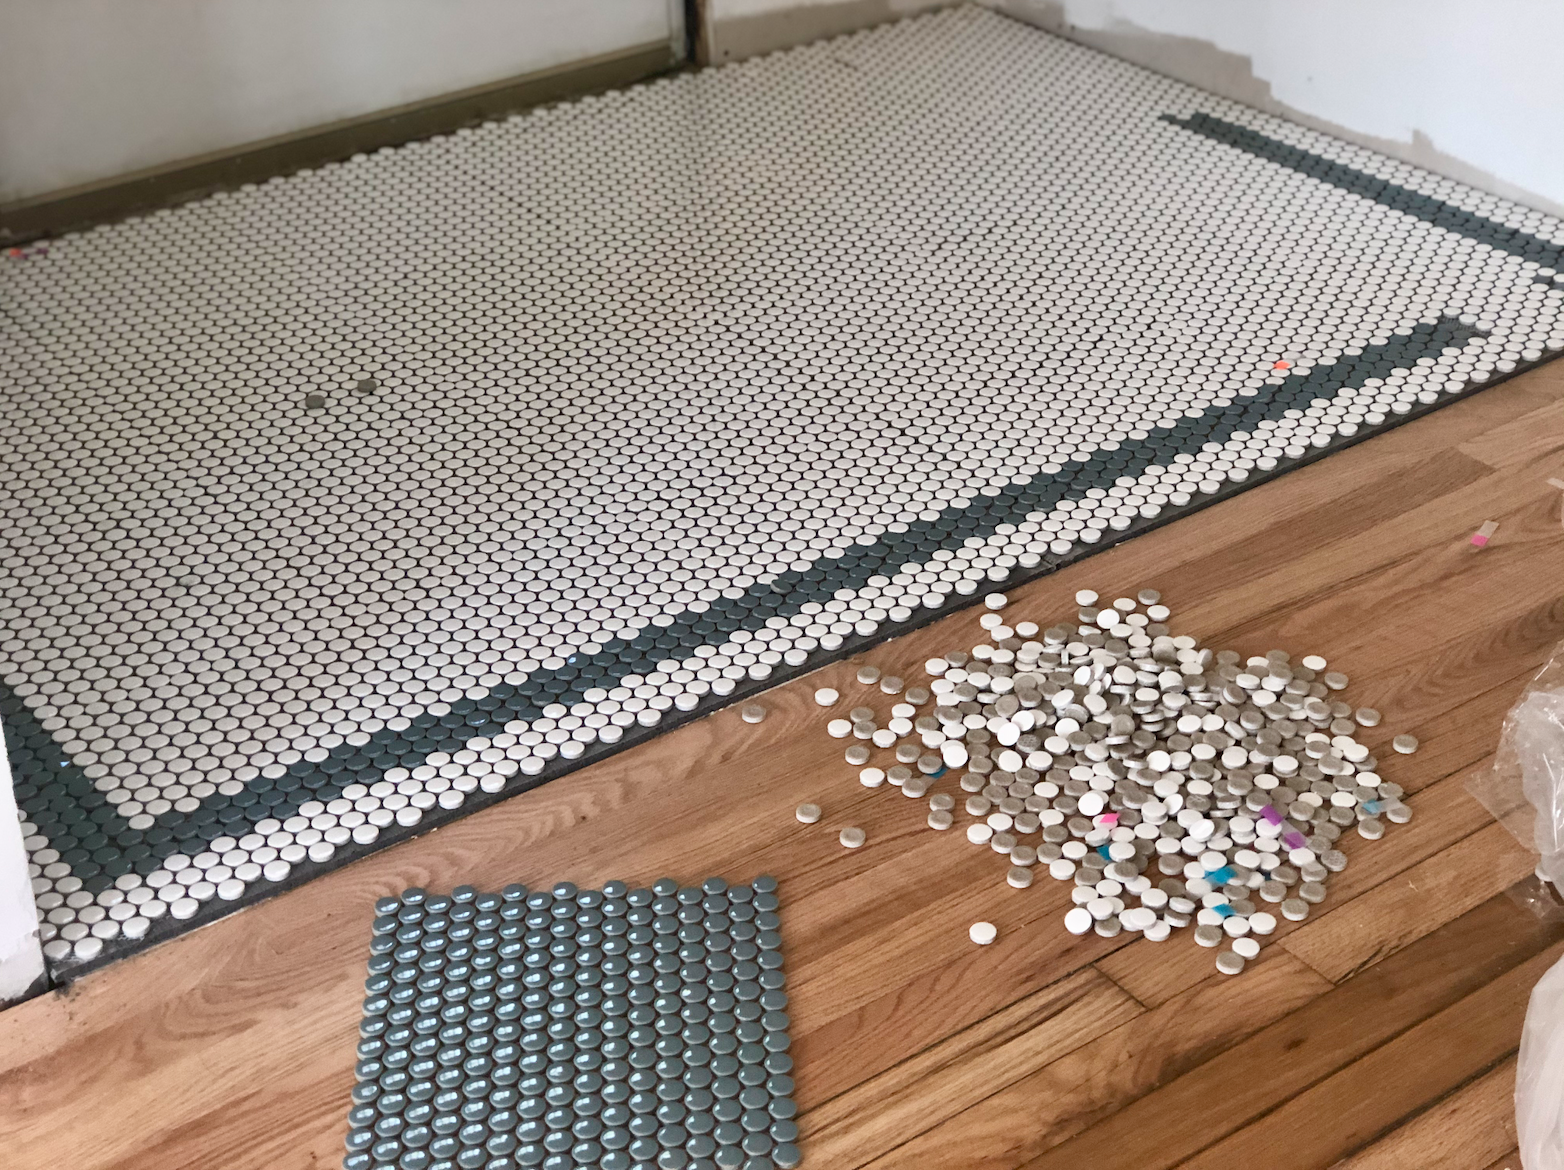 Adding the border around the penny tile